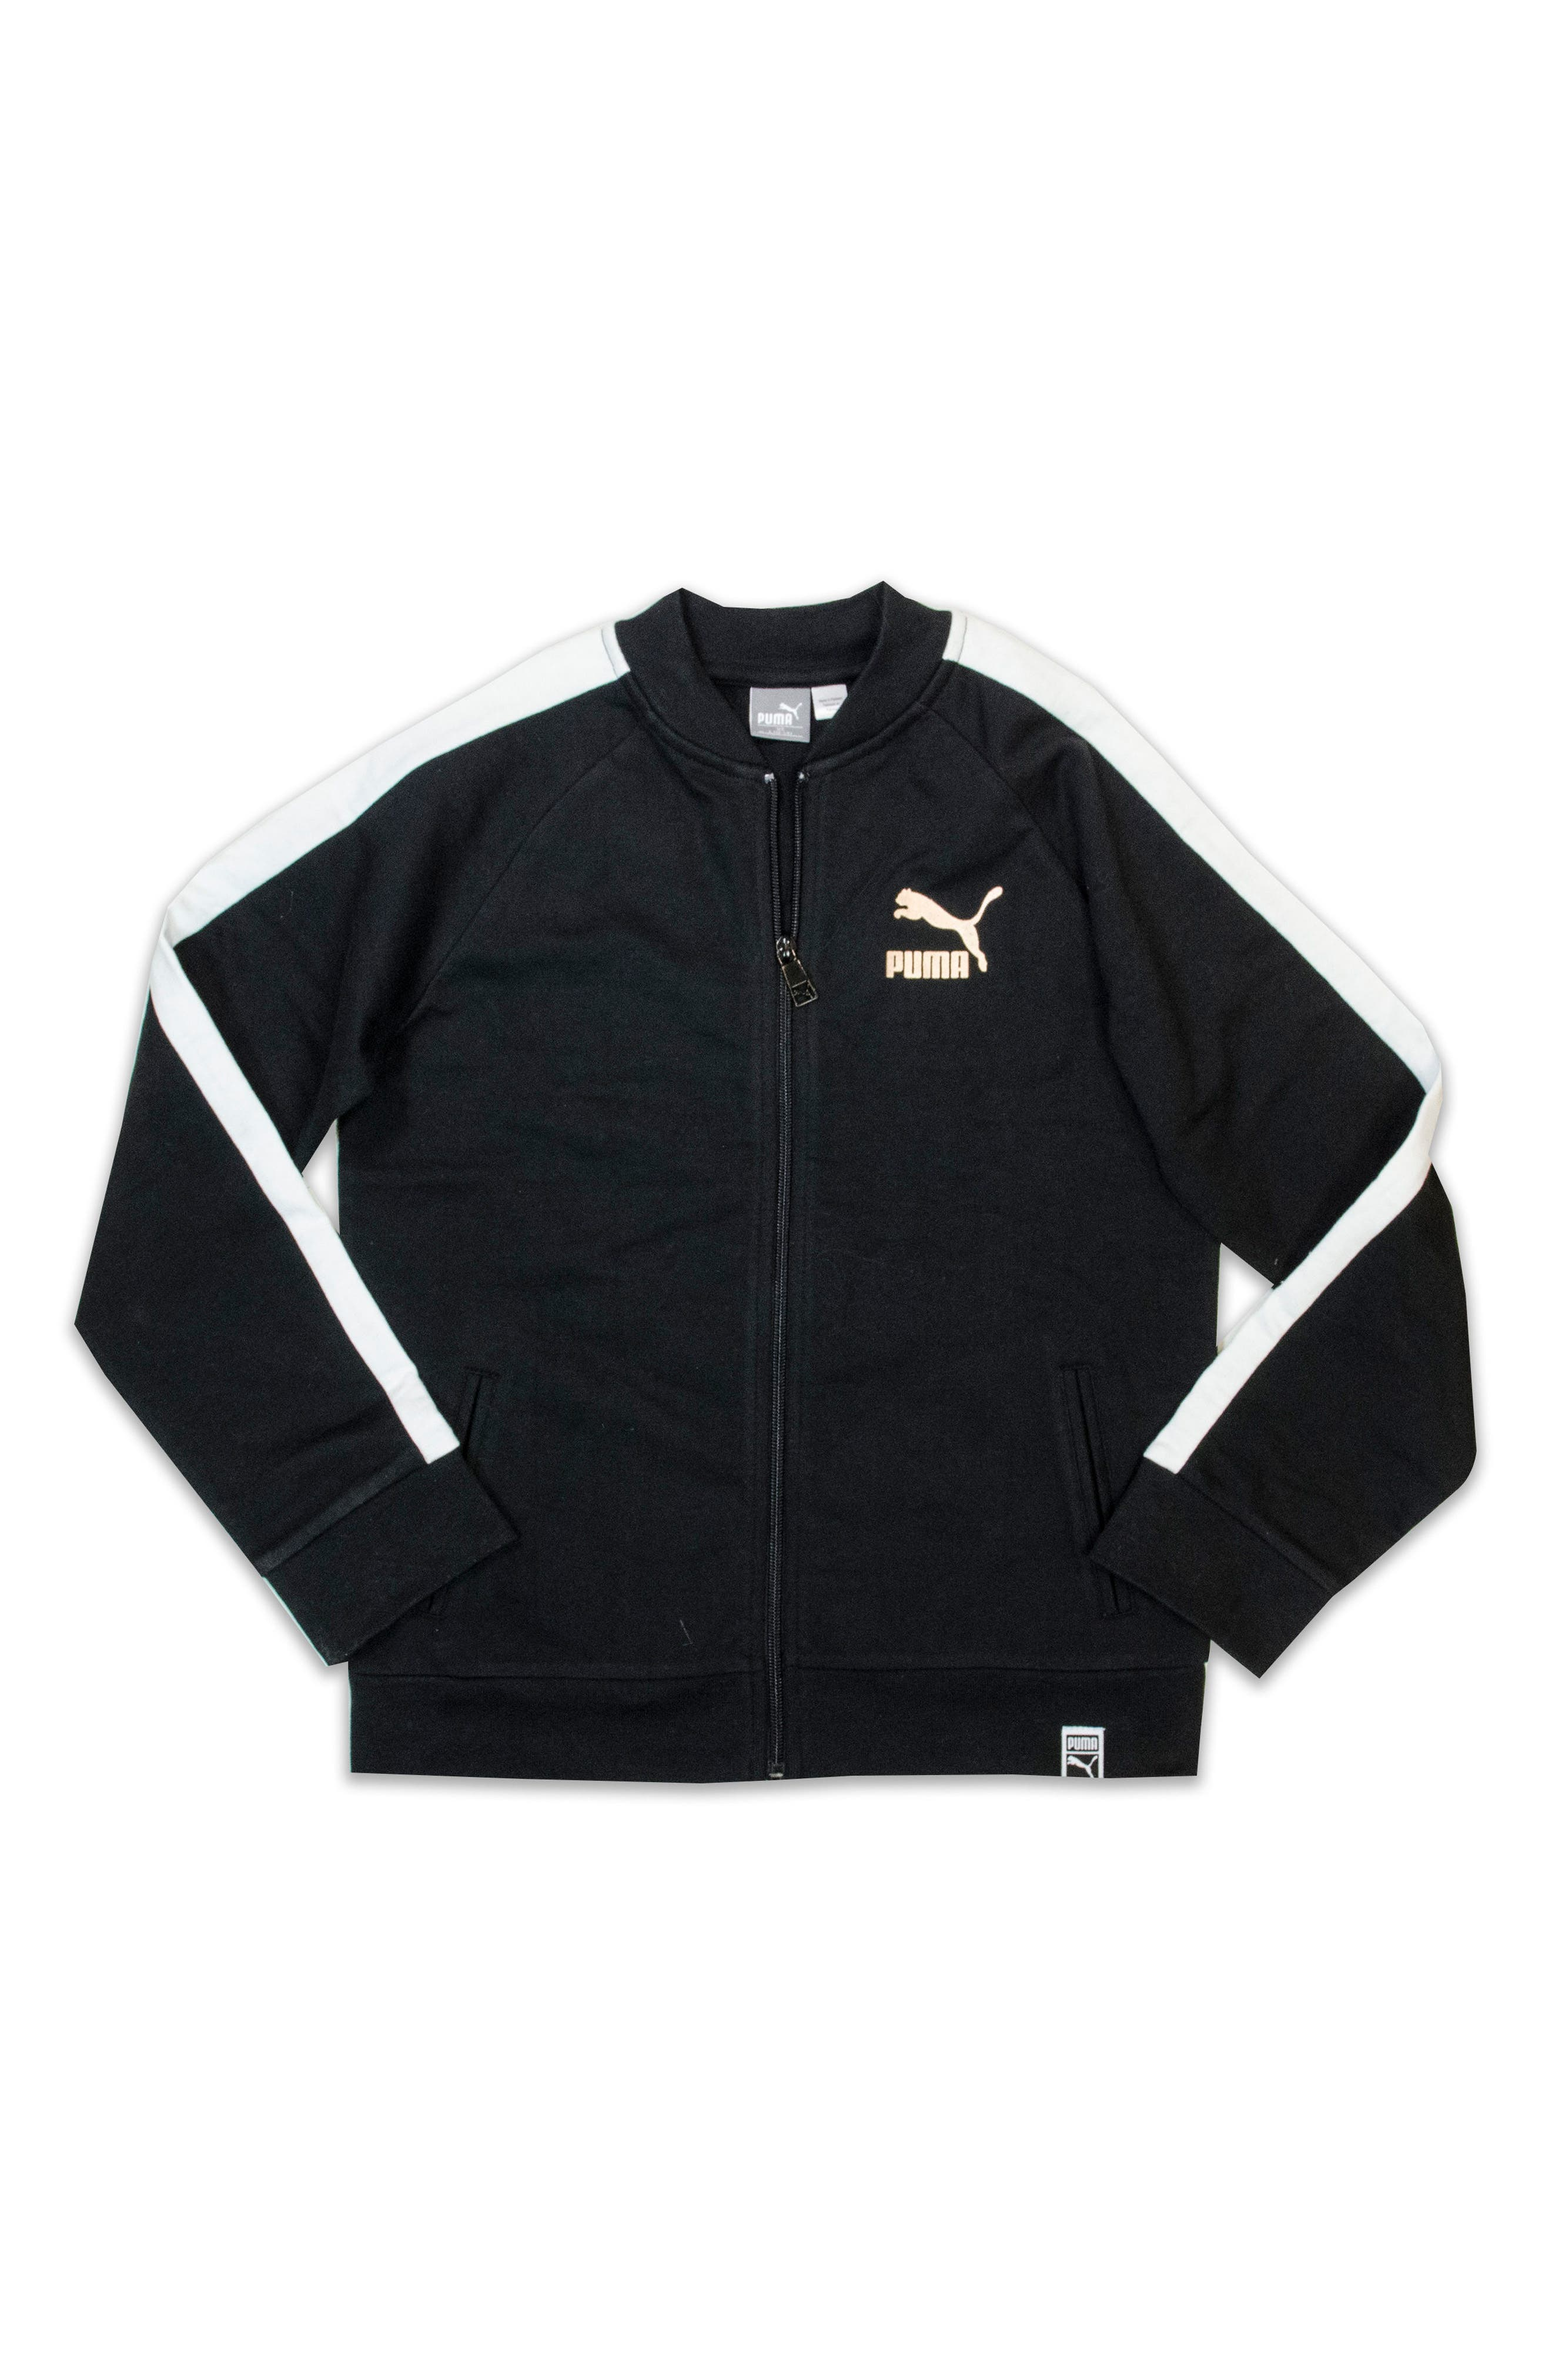 T7 Logo French Terry Track Jacket,                             Main thumbnail 1, color,                             001